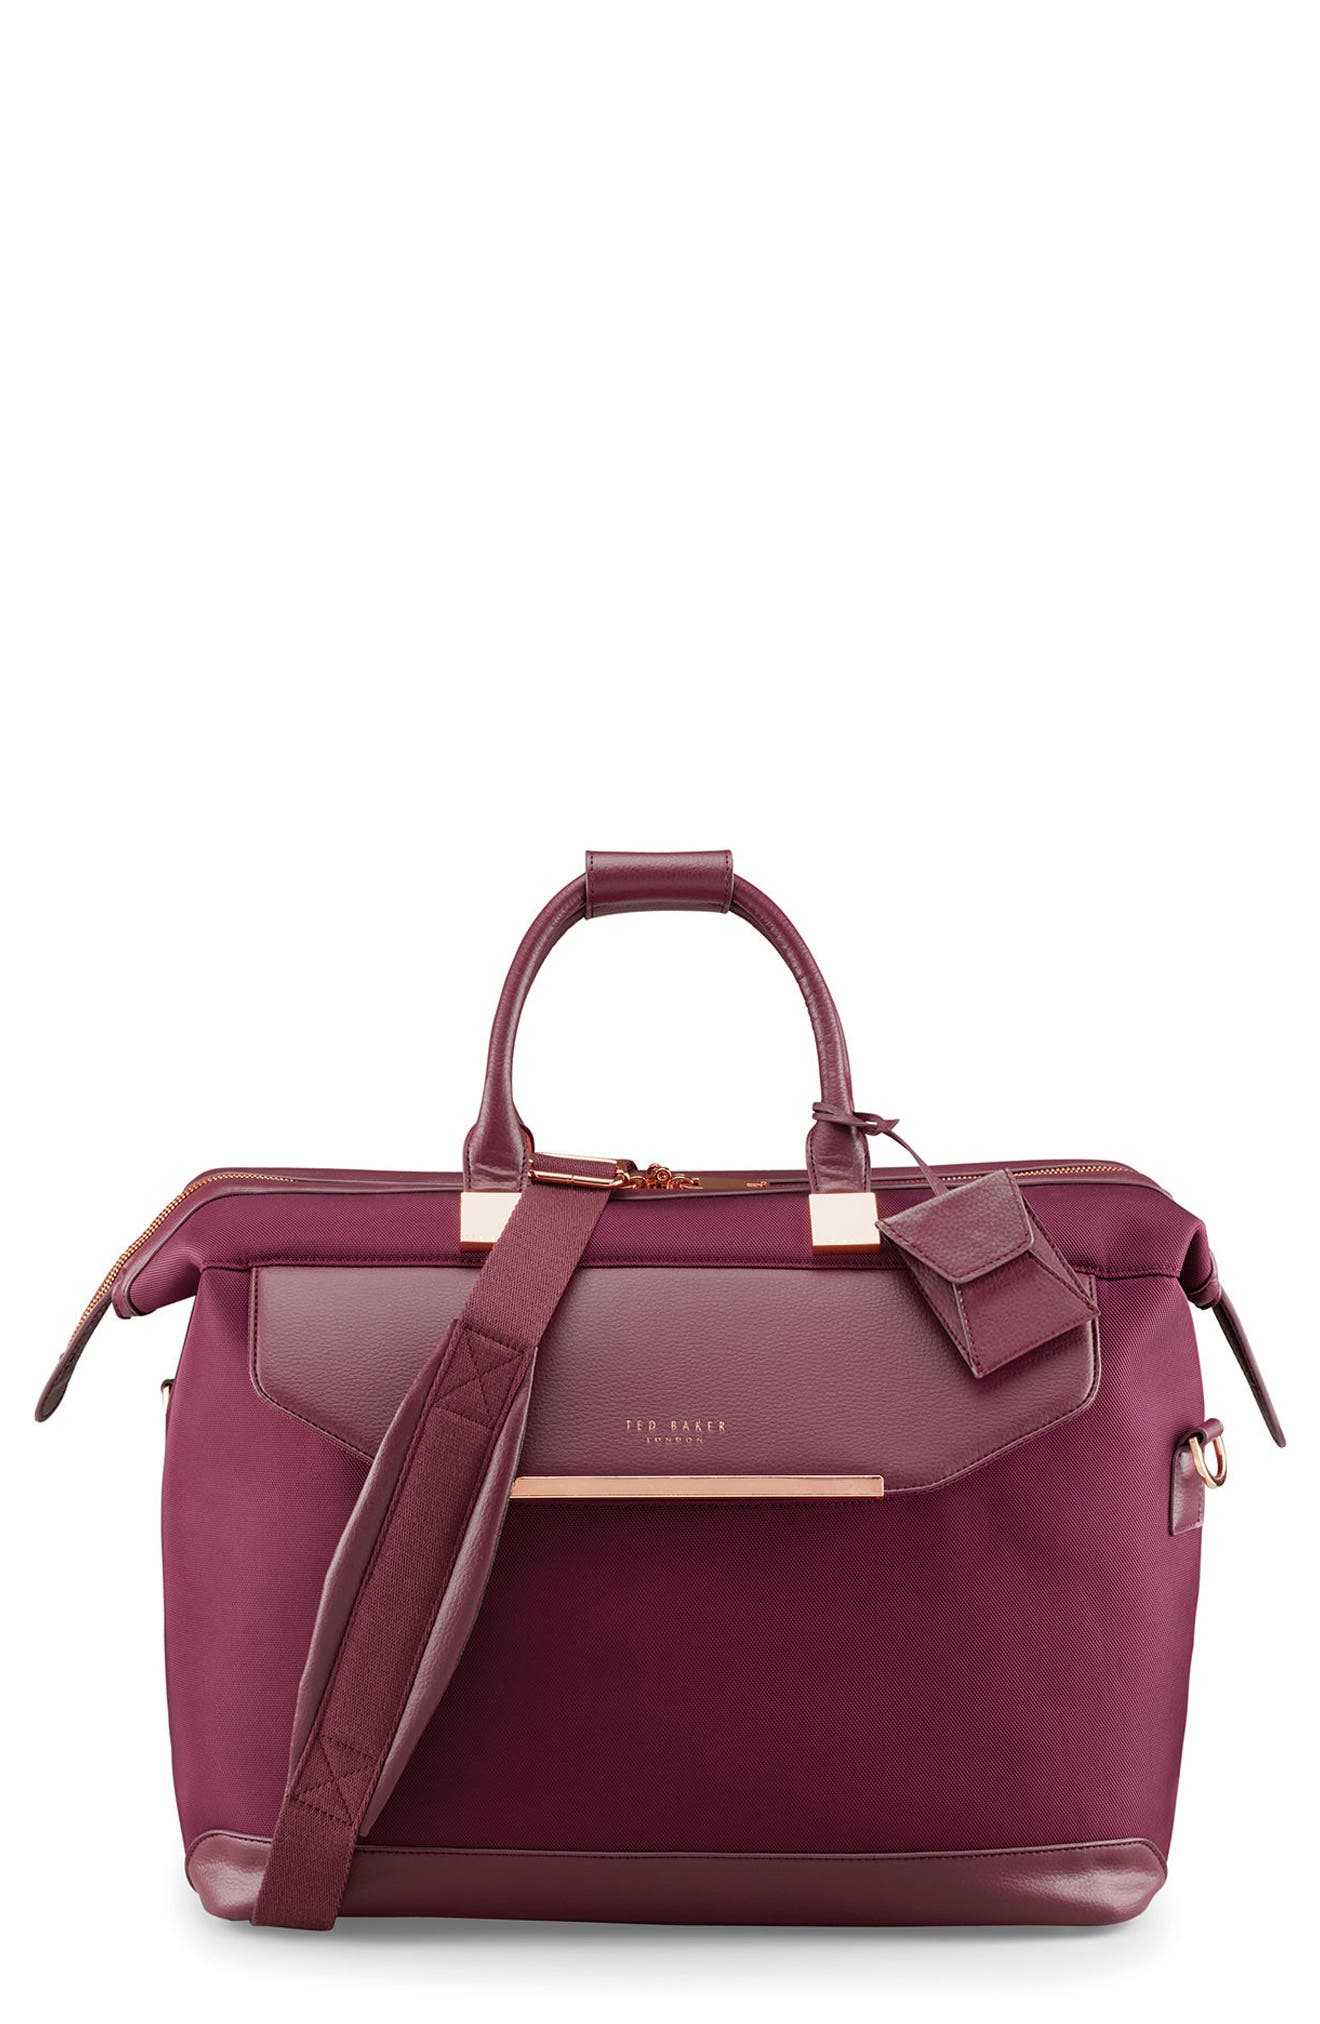 TED BAKER LONDON, Small Clipper Duffle Bag, Main thumbnail 1, color, BURGUNDY